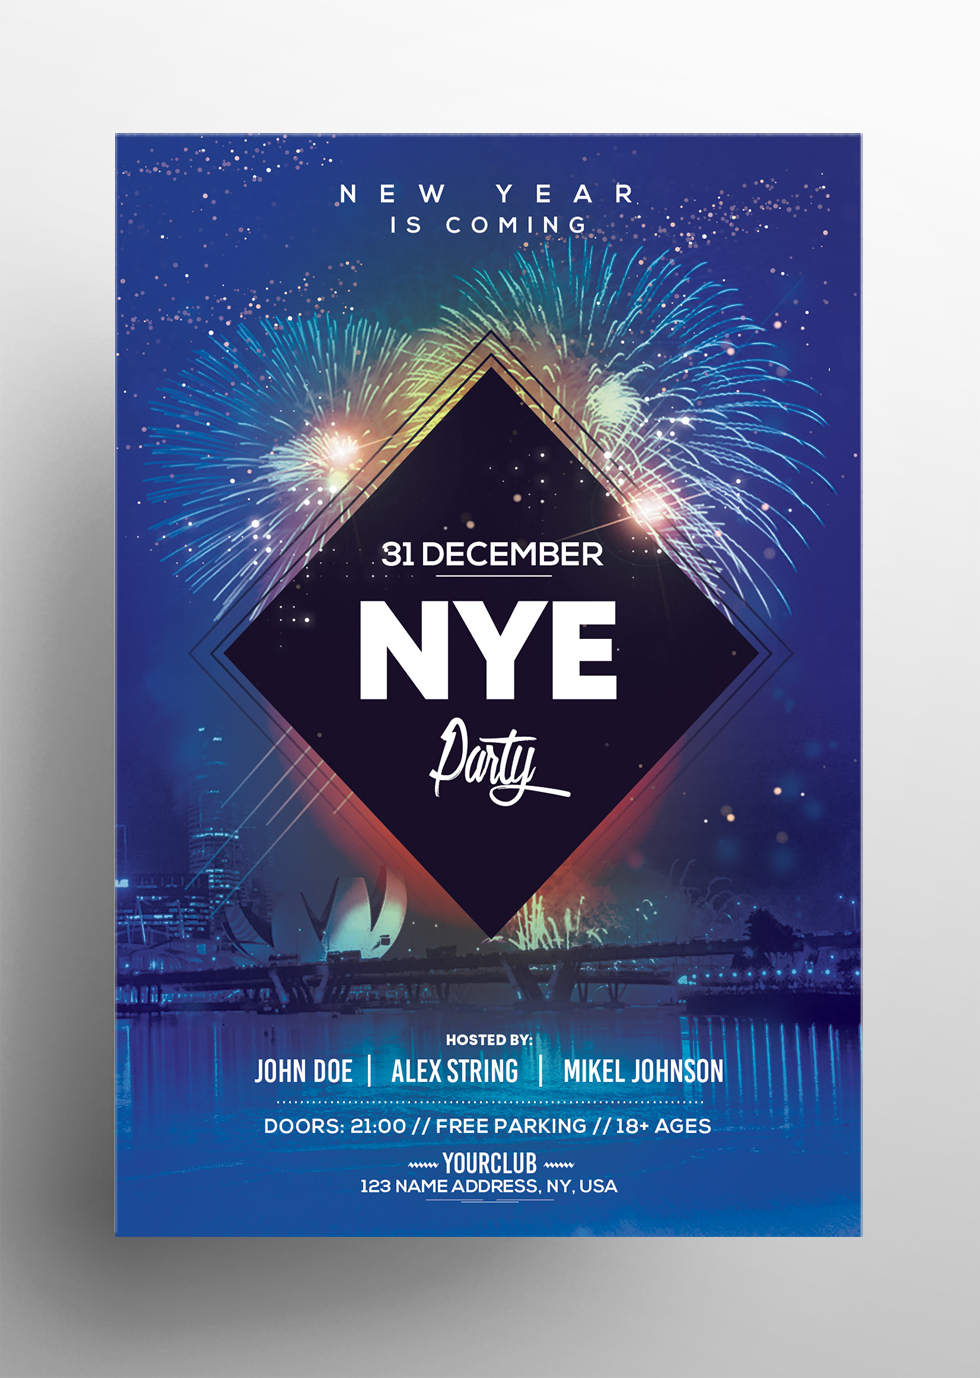 2019 NYE Party - Free New Year PSD Flyer